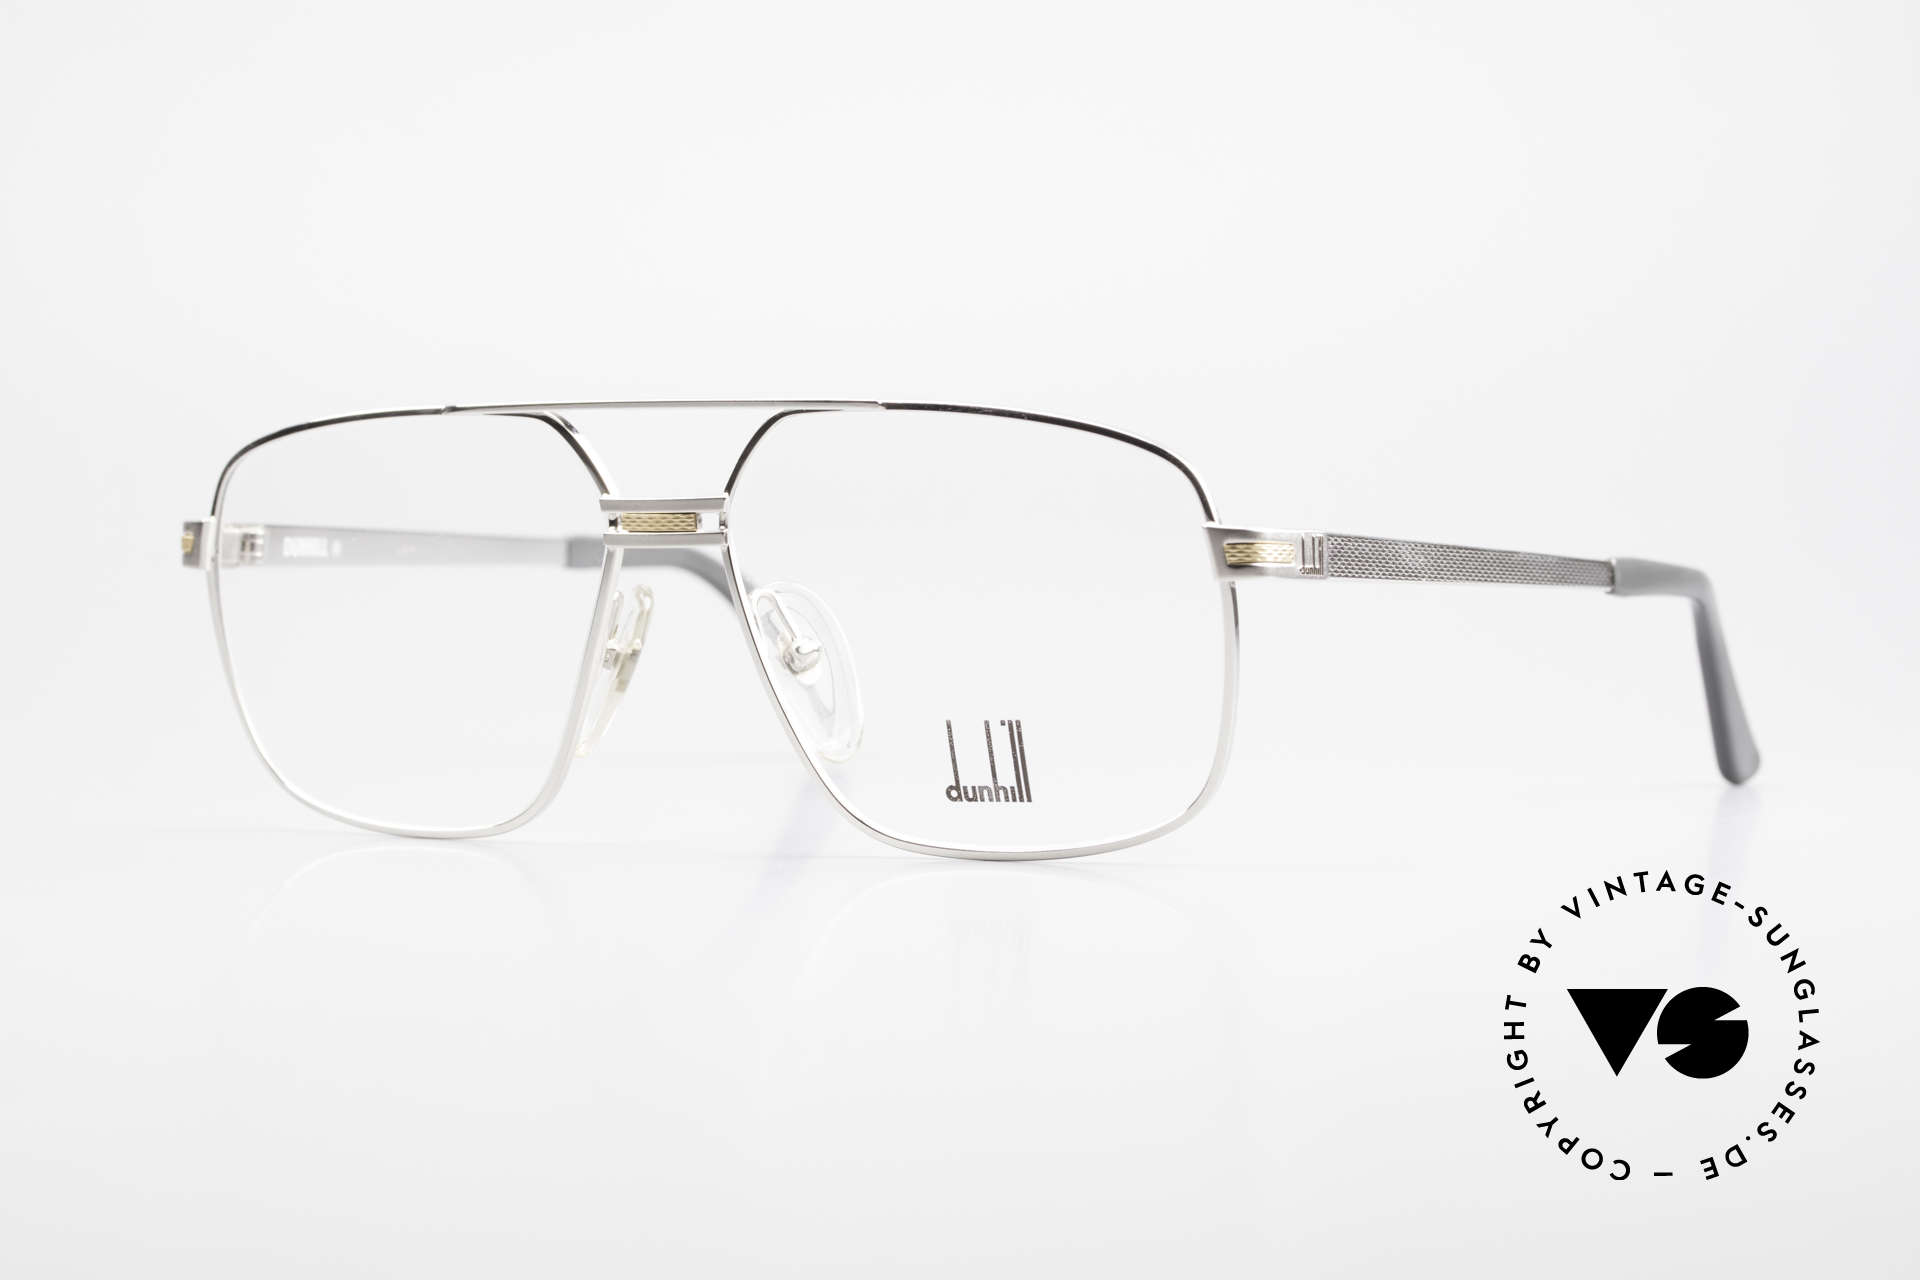 Dunhill 6134 Platinum Plated 90's Frame, platinum-plated frame with a gold-plated decor, Made for Men